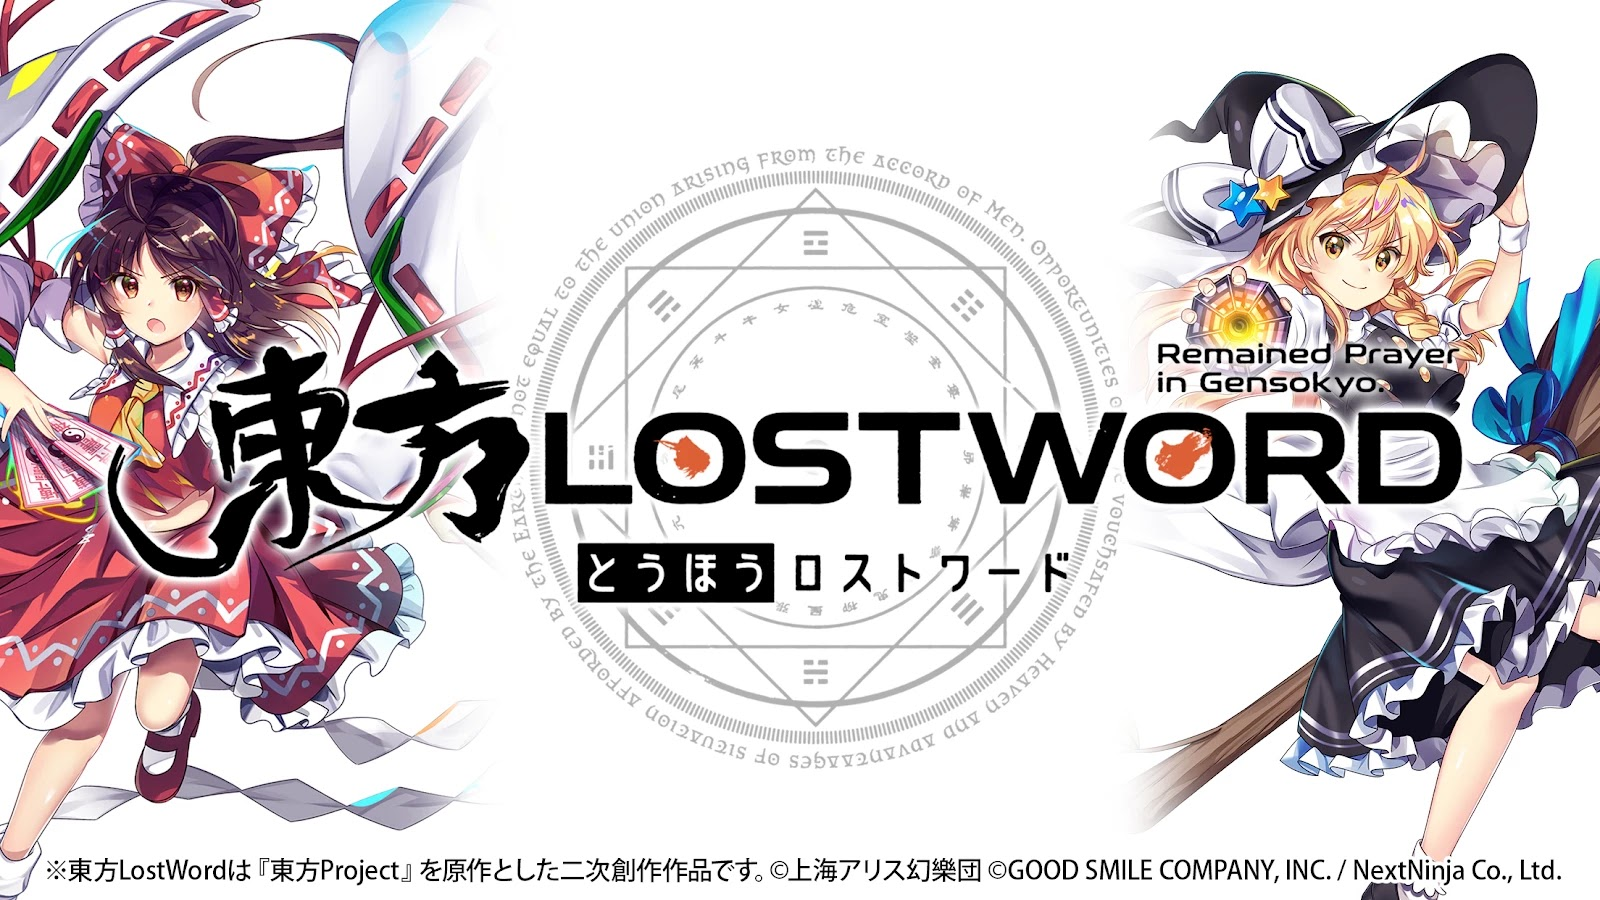 Touhou: Lost Word - First Official RPG Touhou Game